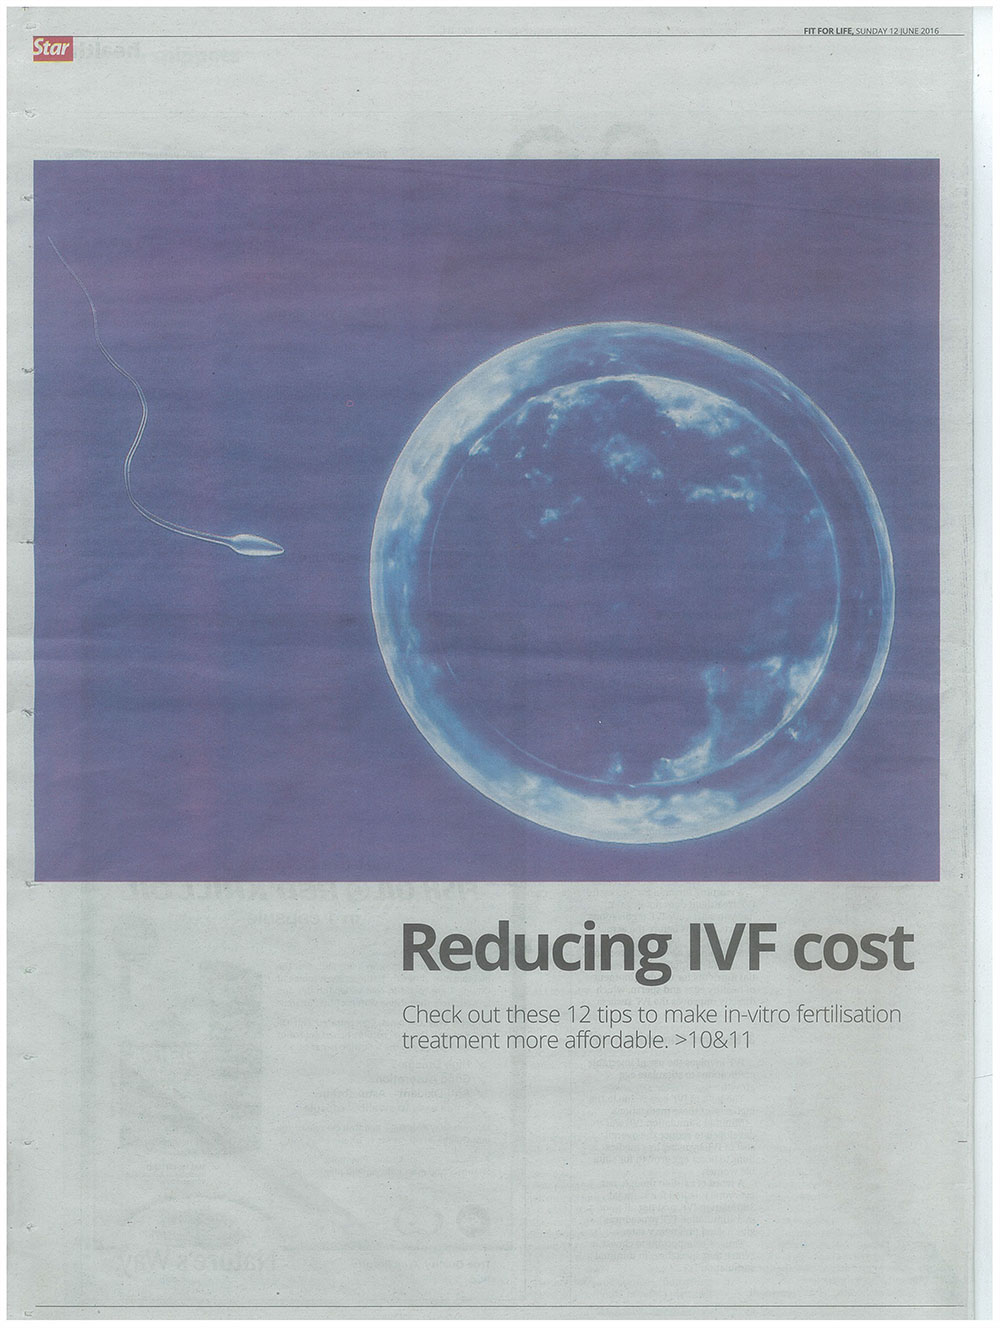 Reducing IVF Cost - The Star, Fit for Life (12 June 2016)